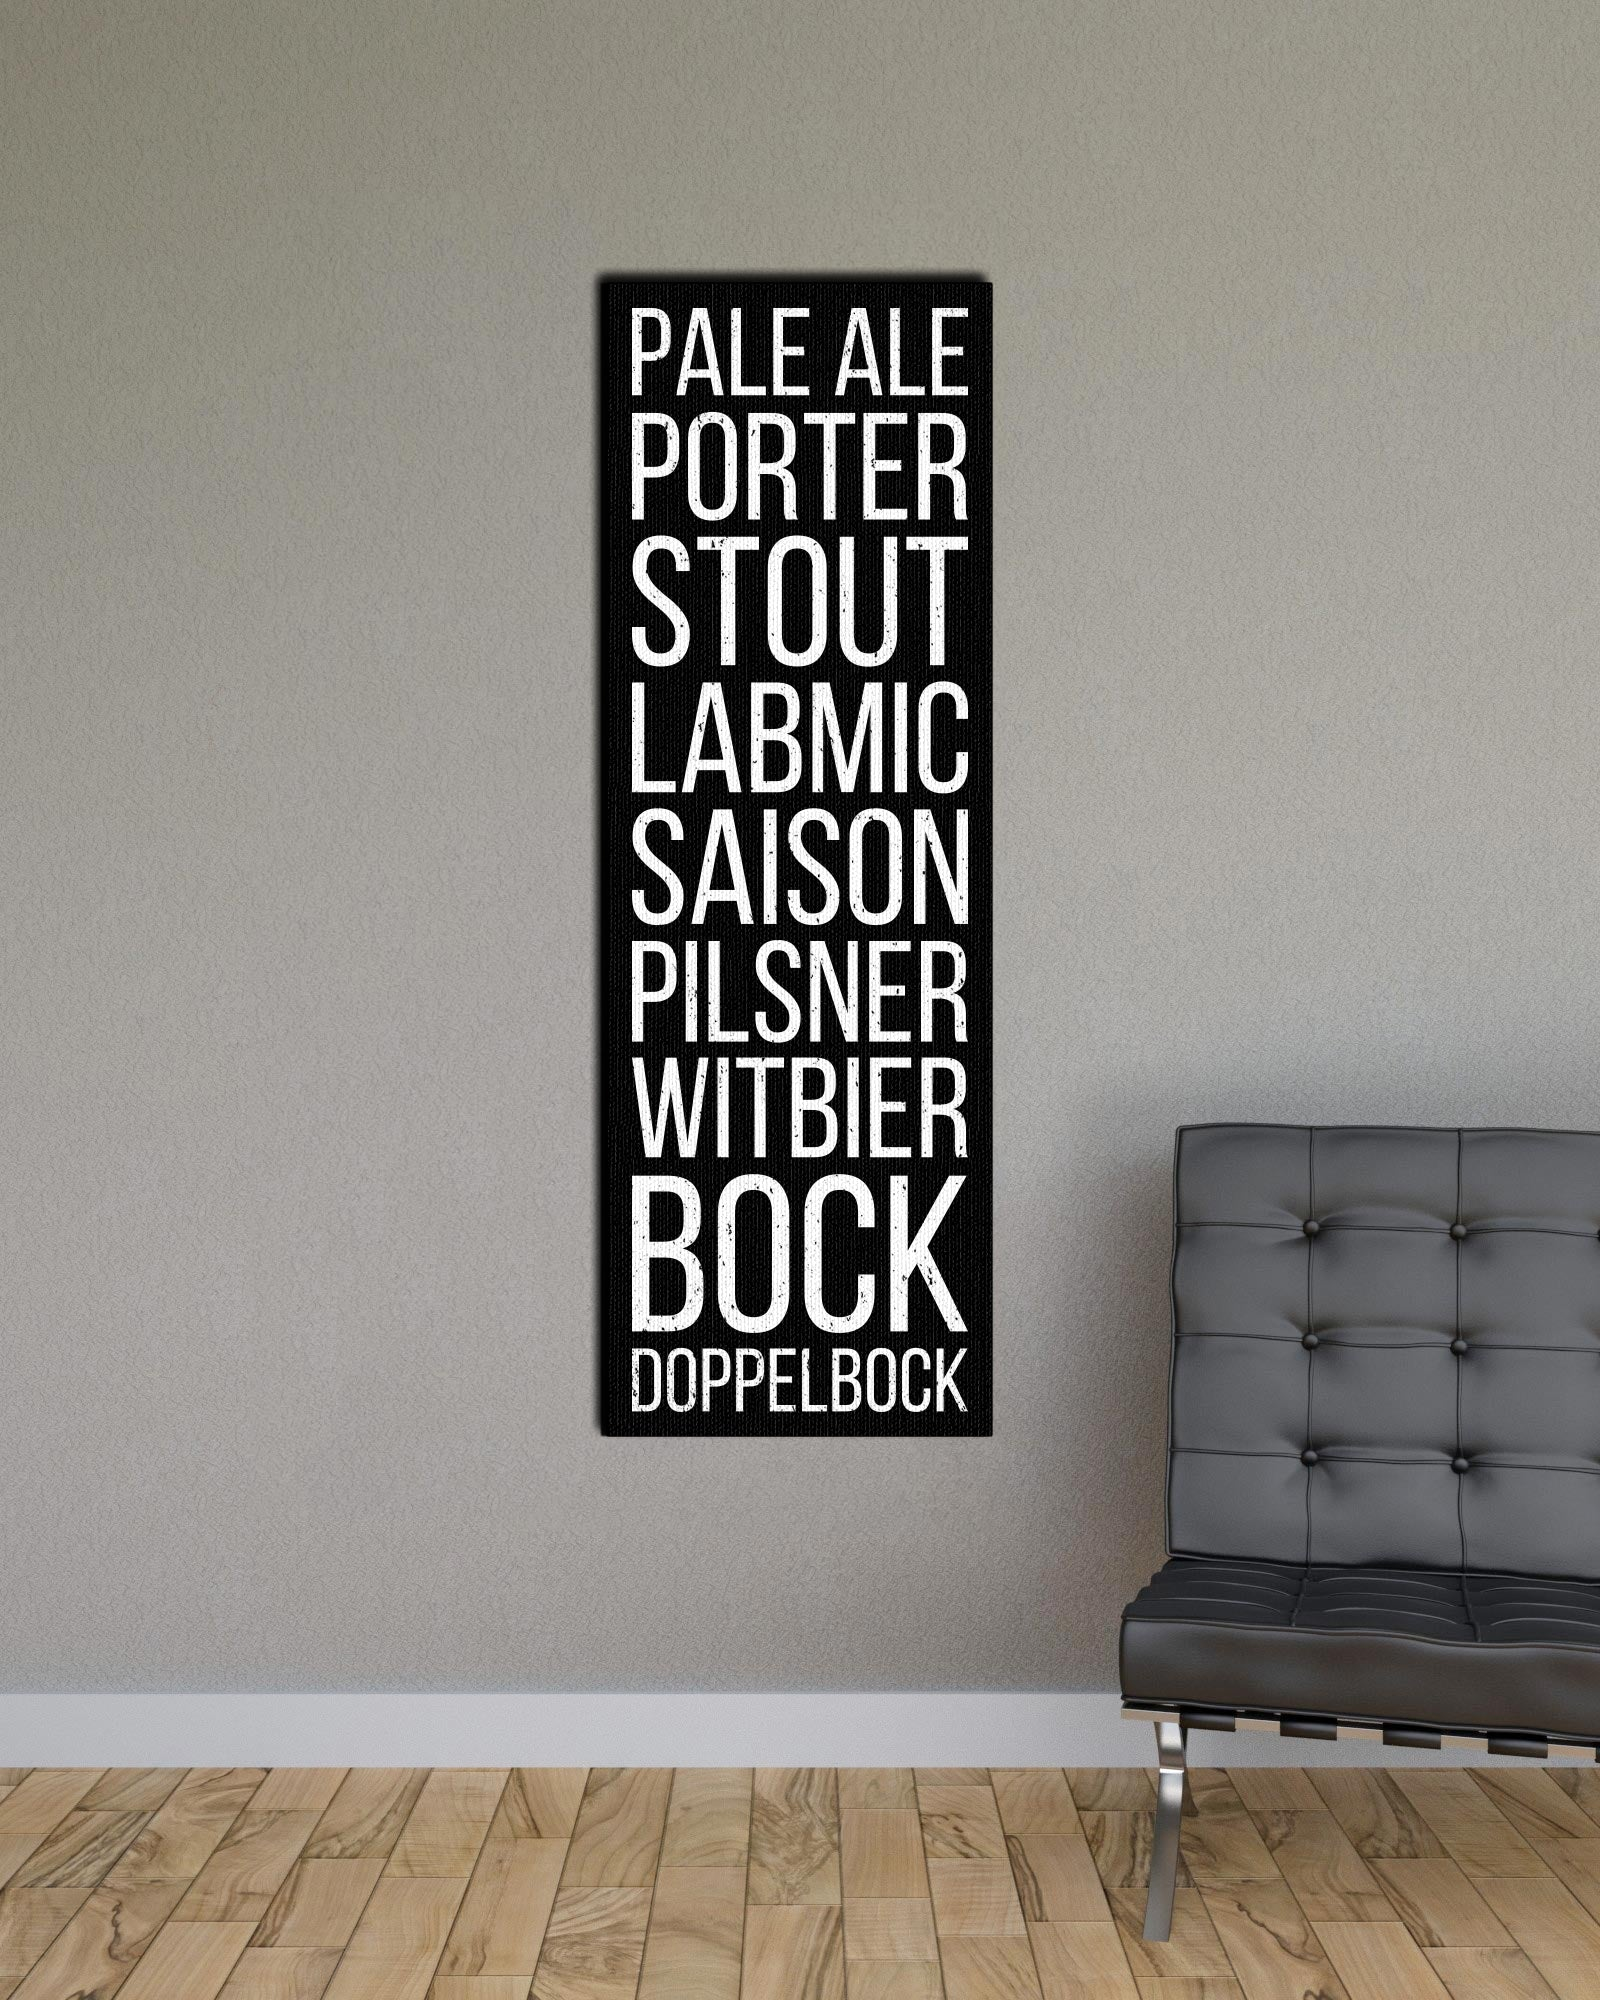 Beer Types Pale ale porter stout Bus Scroll Subway Print